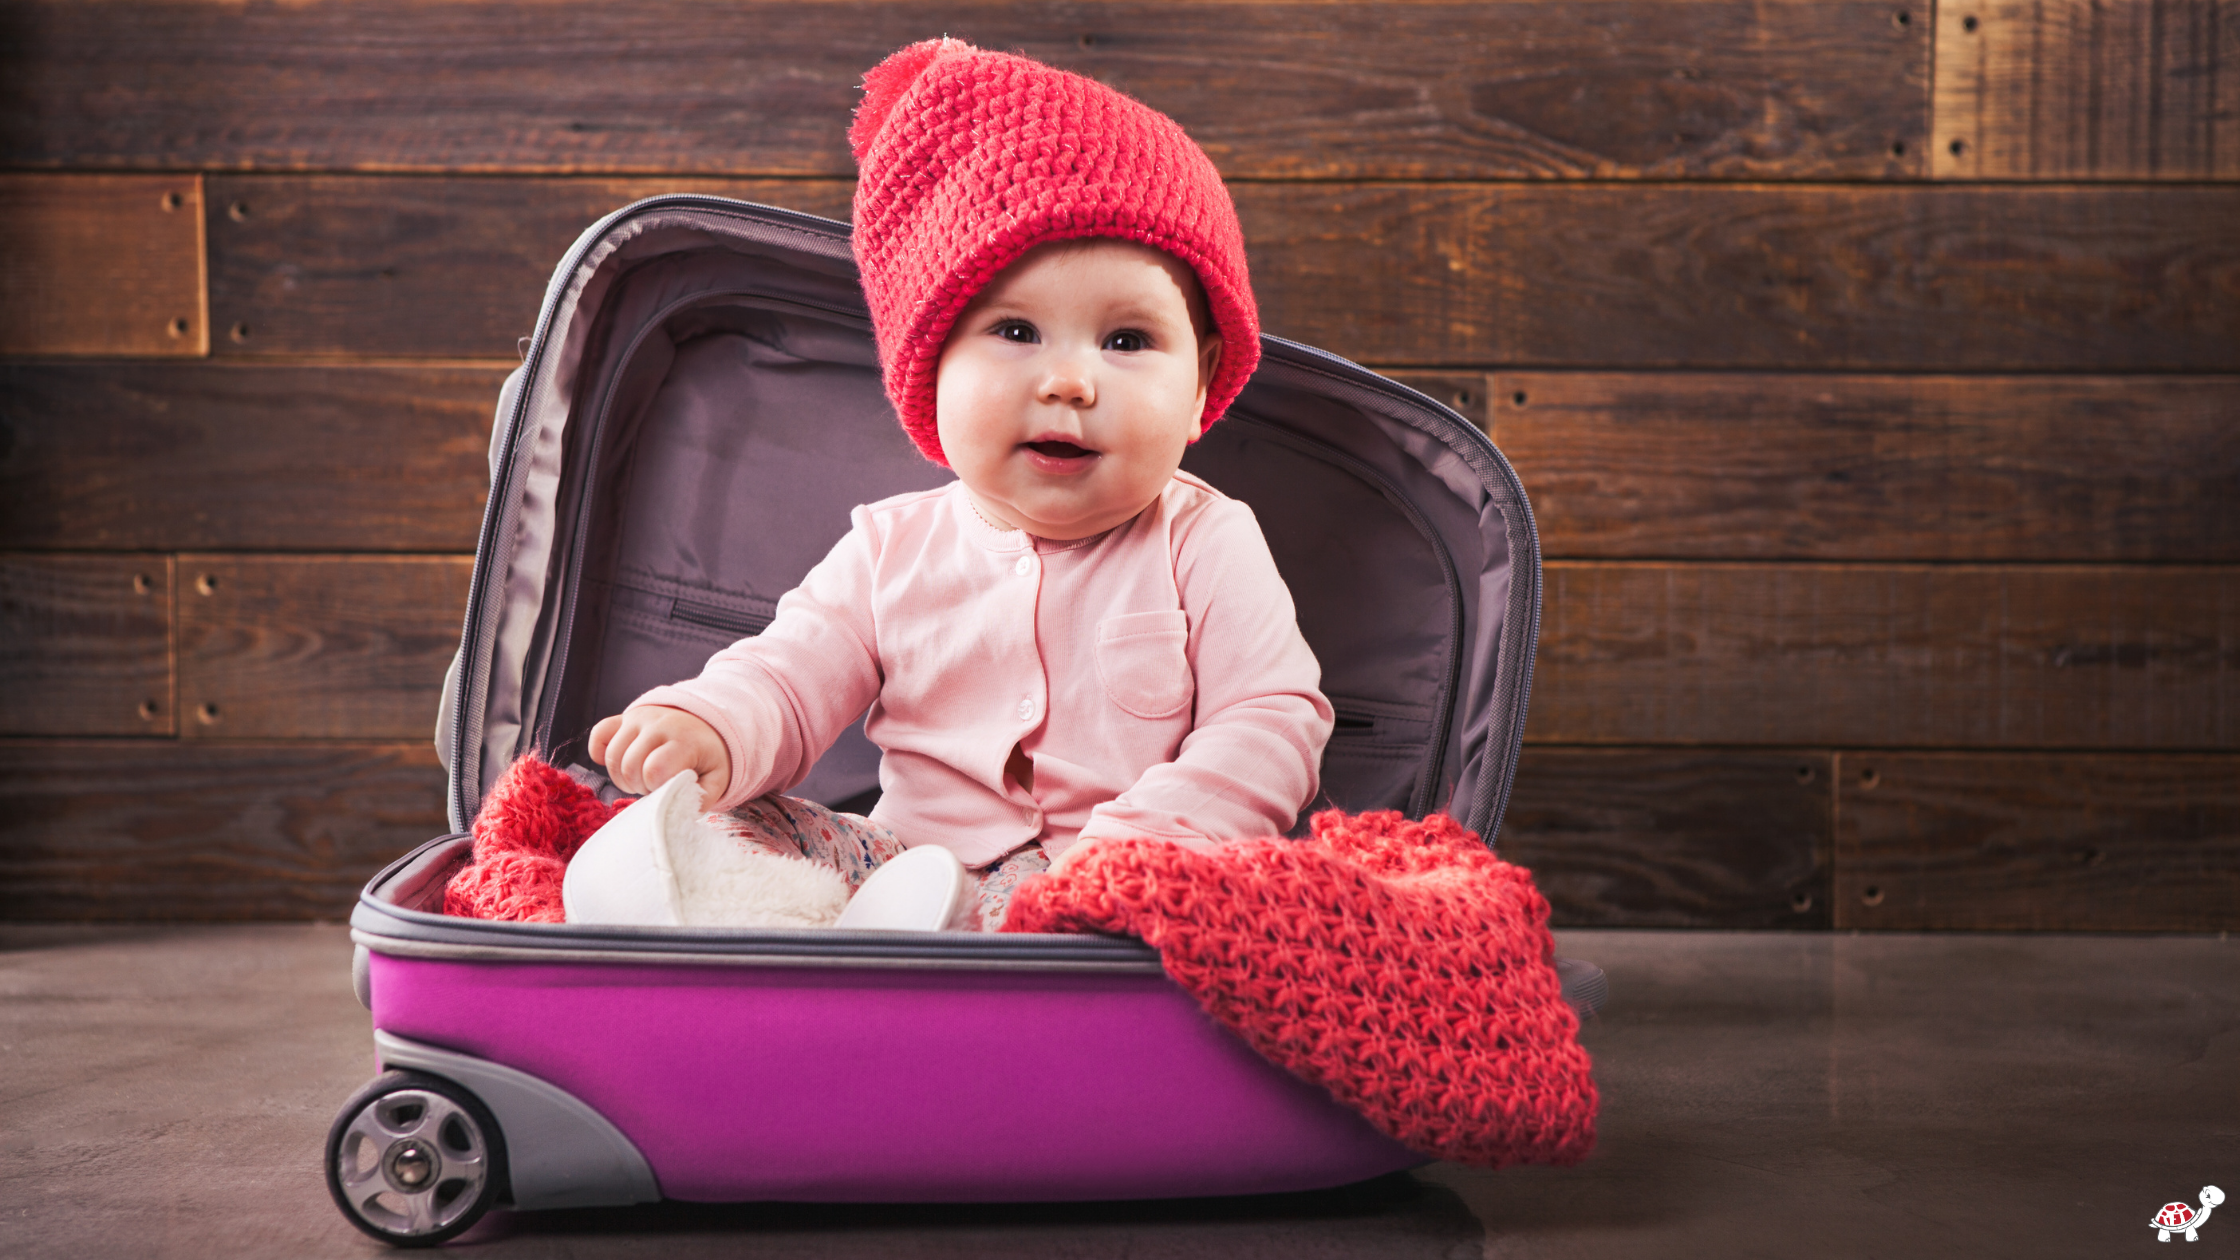 Travel with Baby in suitcase